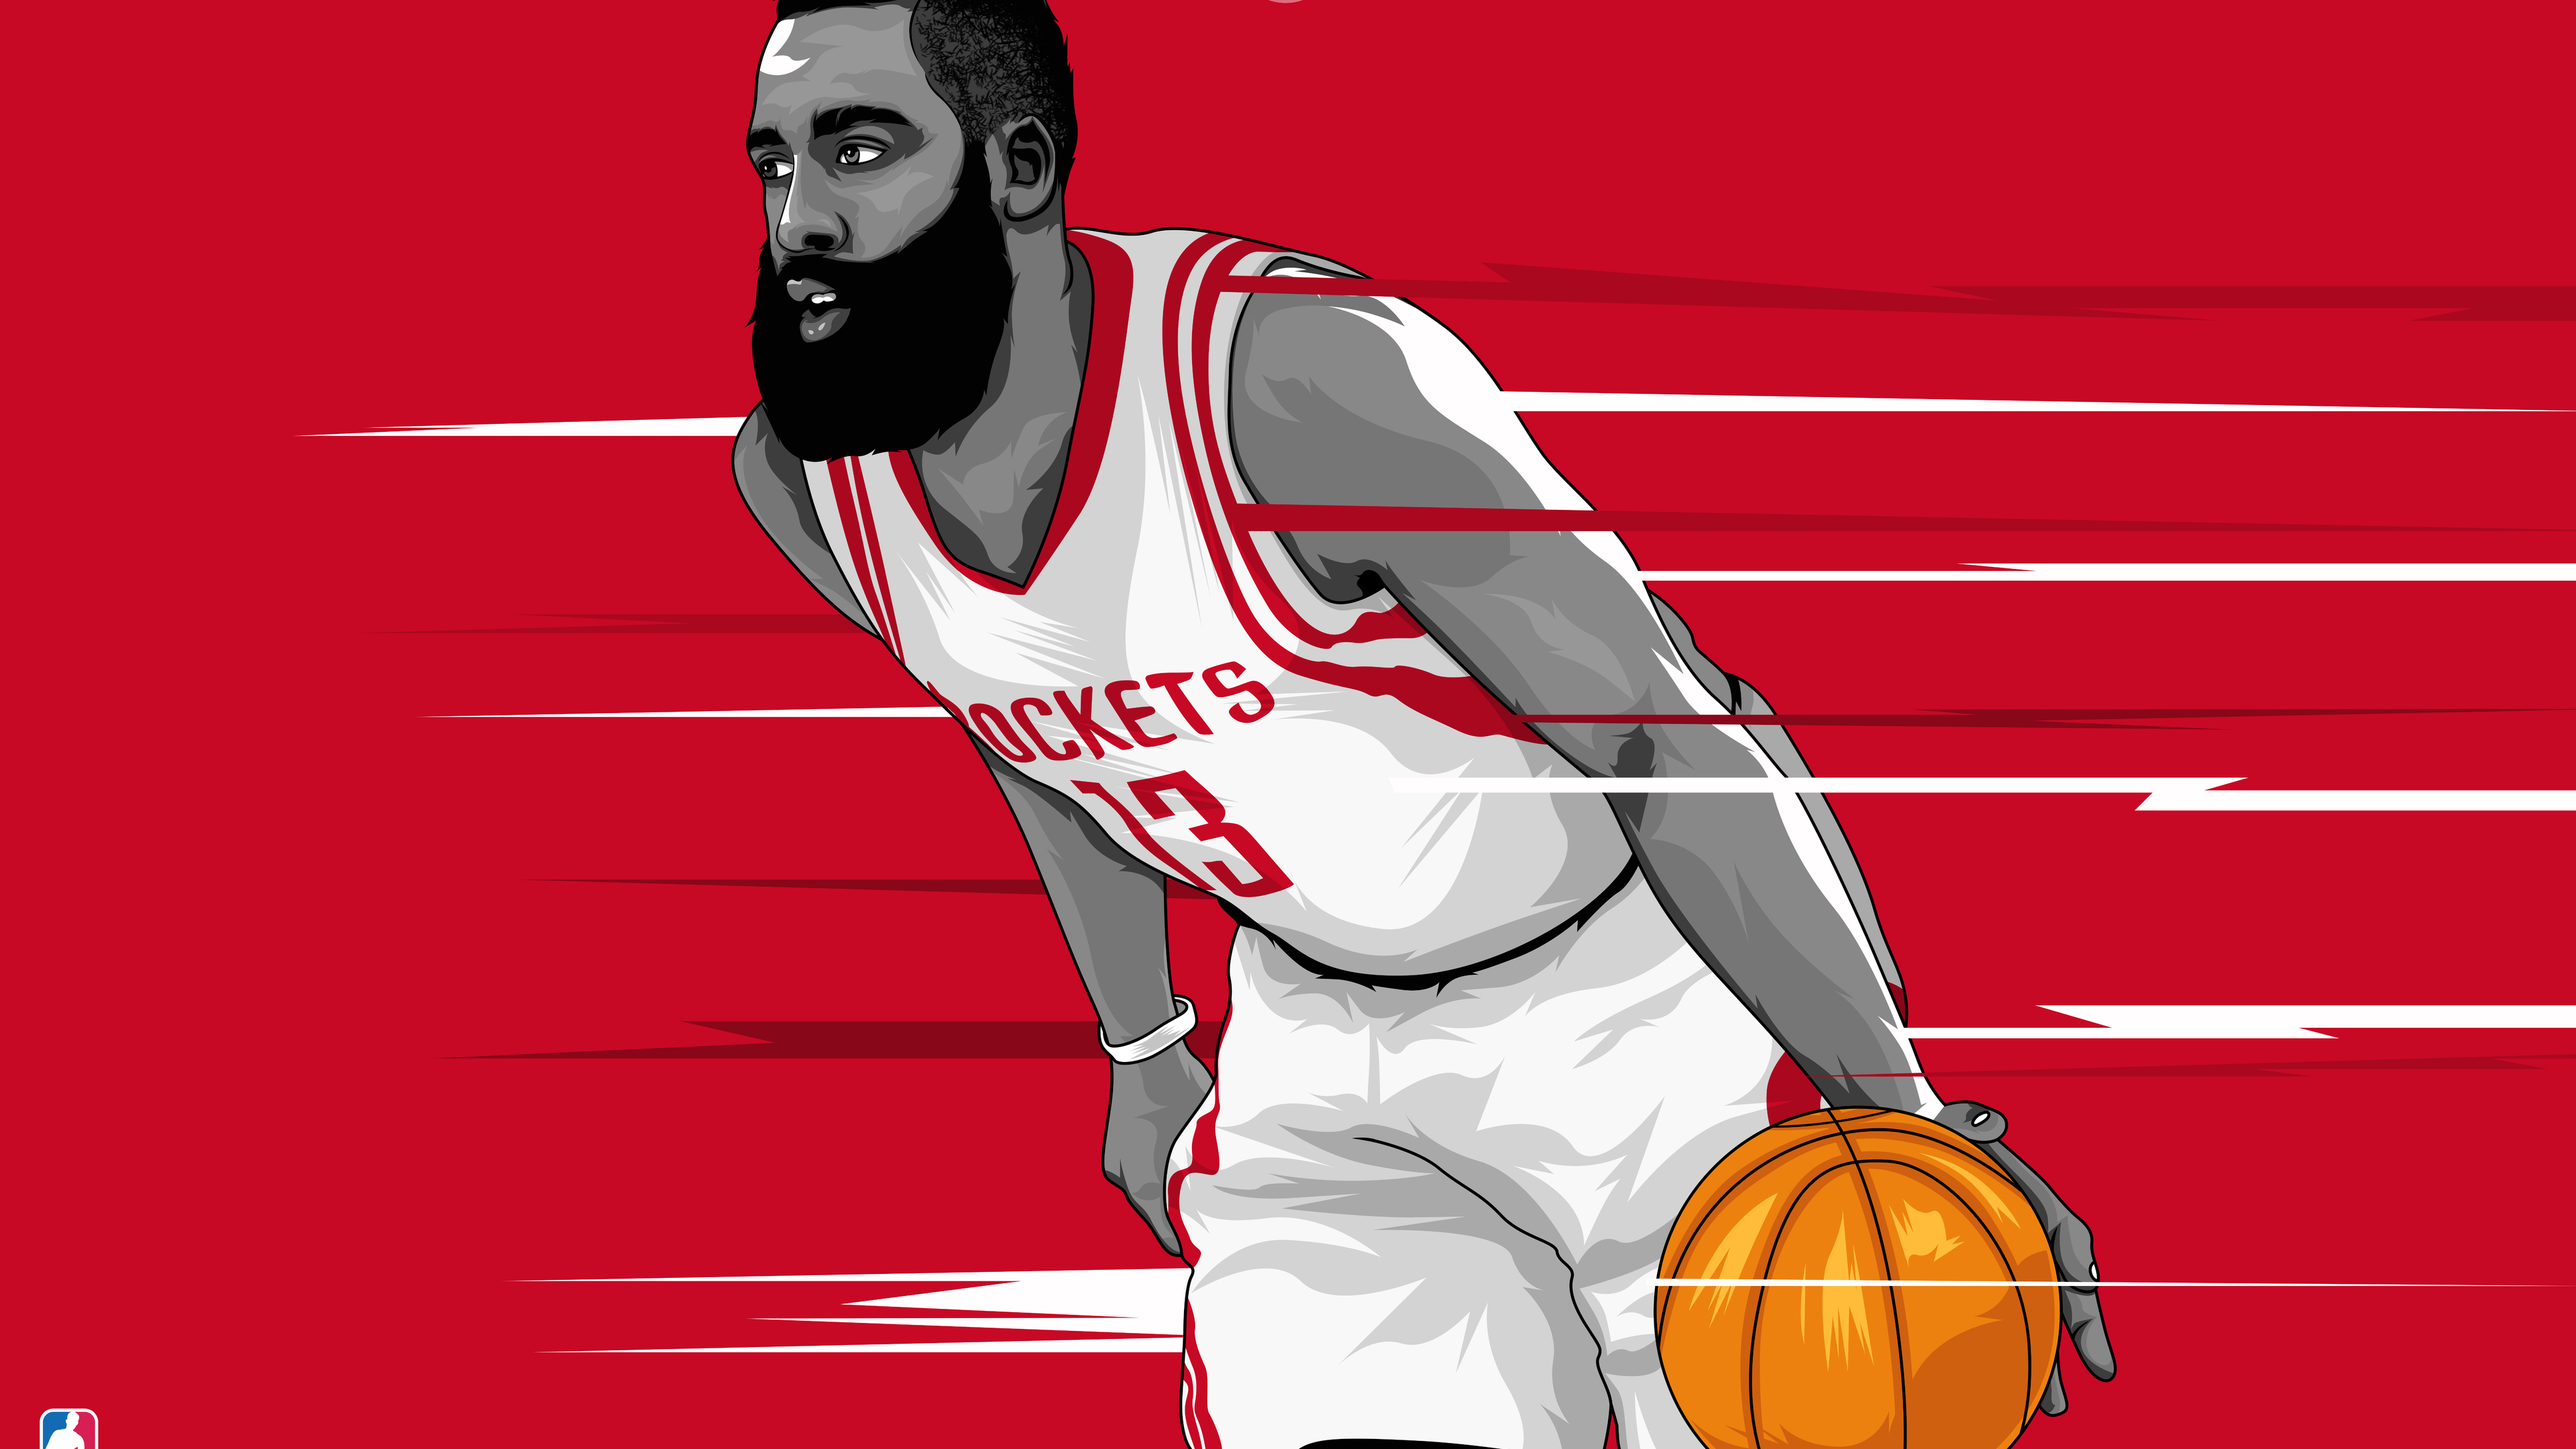 Wallpaper 4k James Harden Artwork 10k Wallpapers 12k